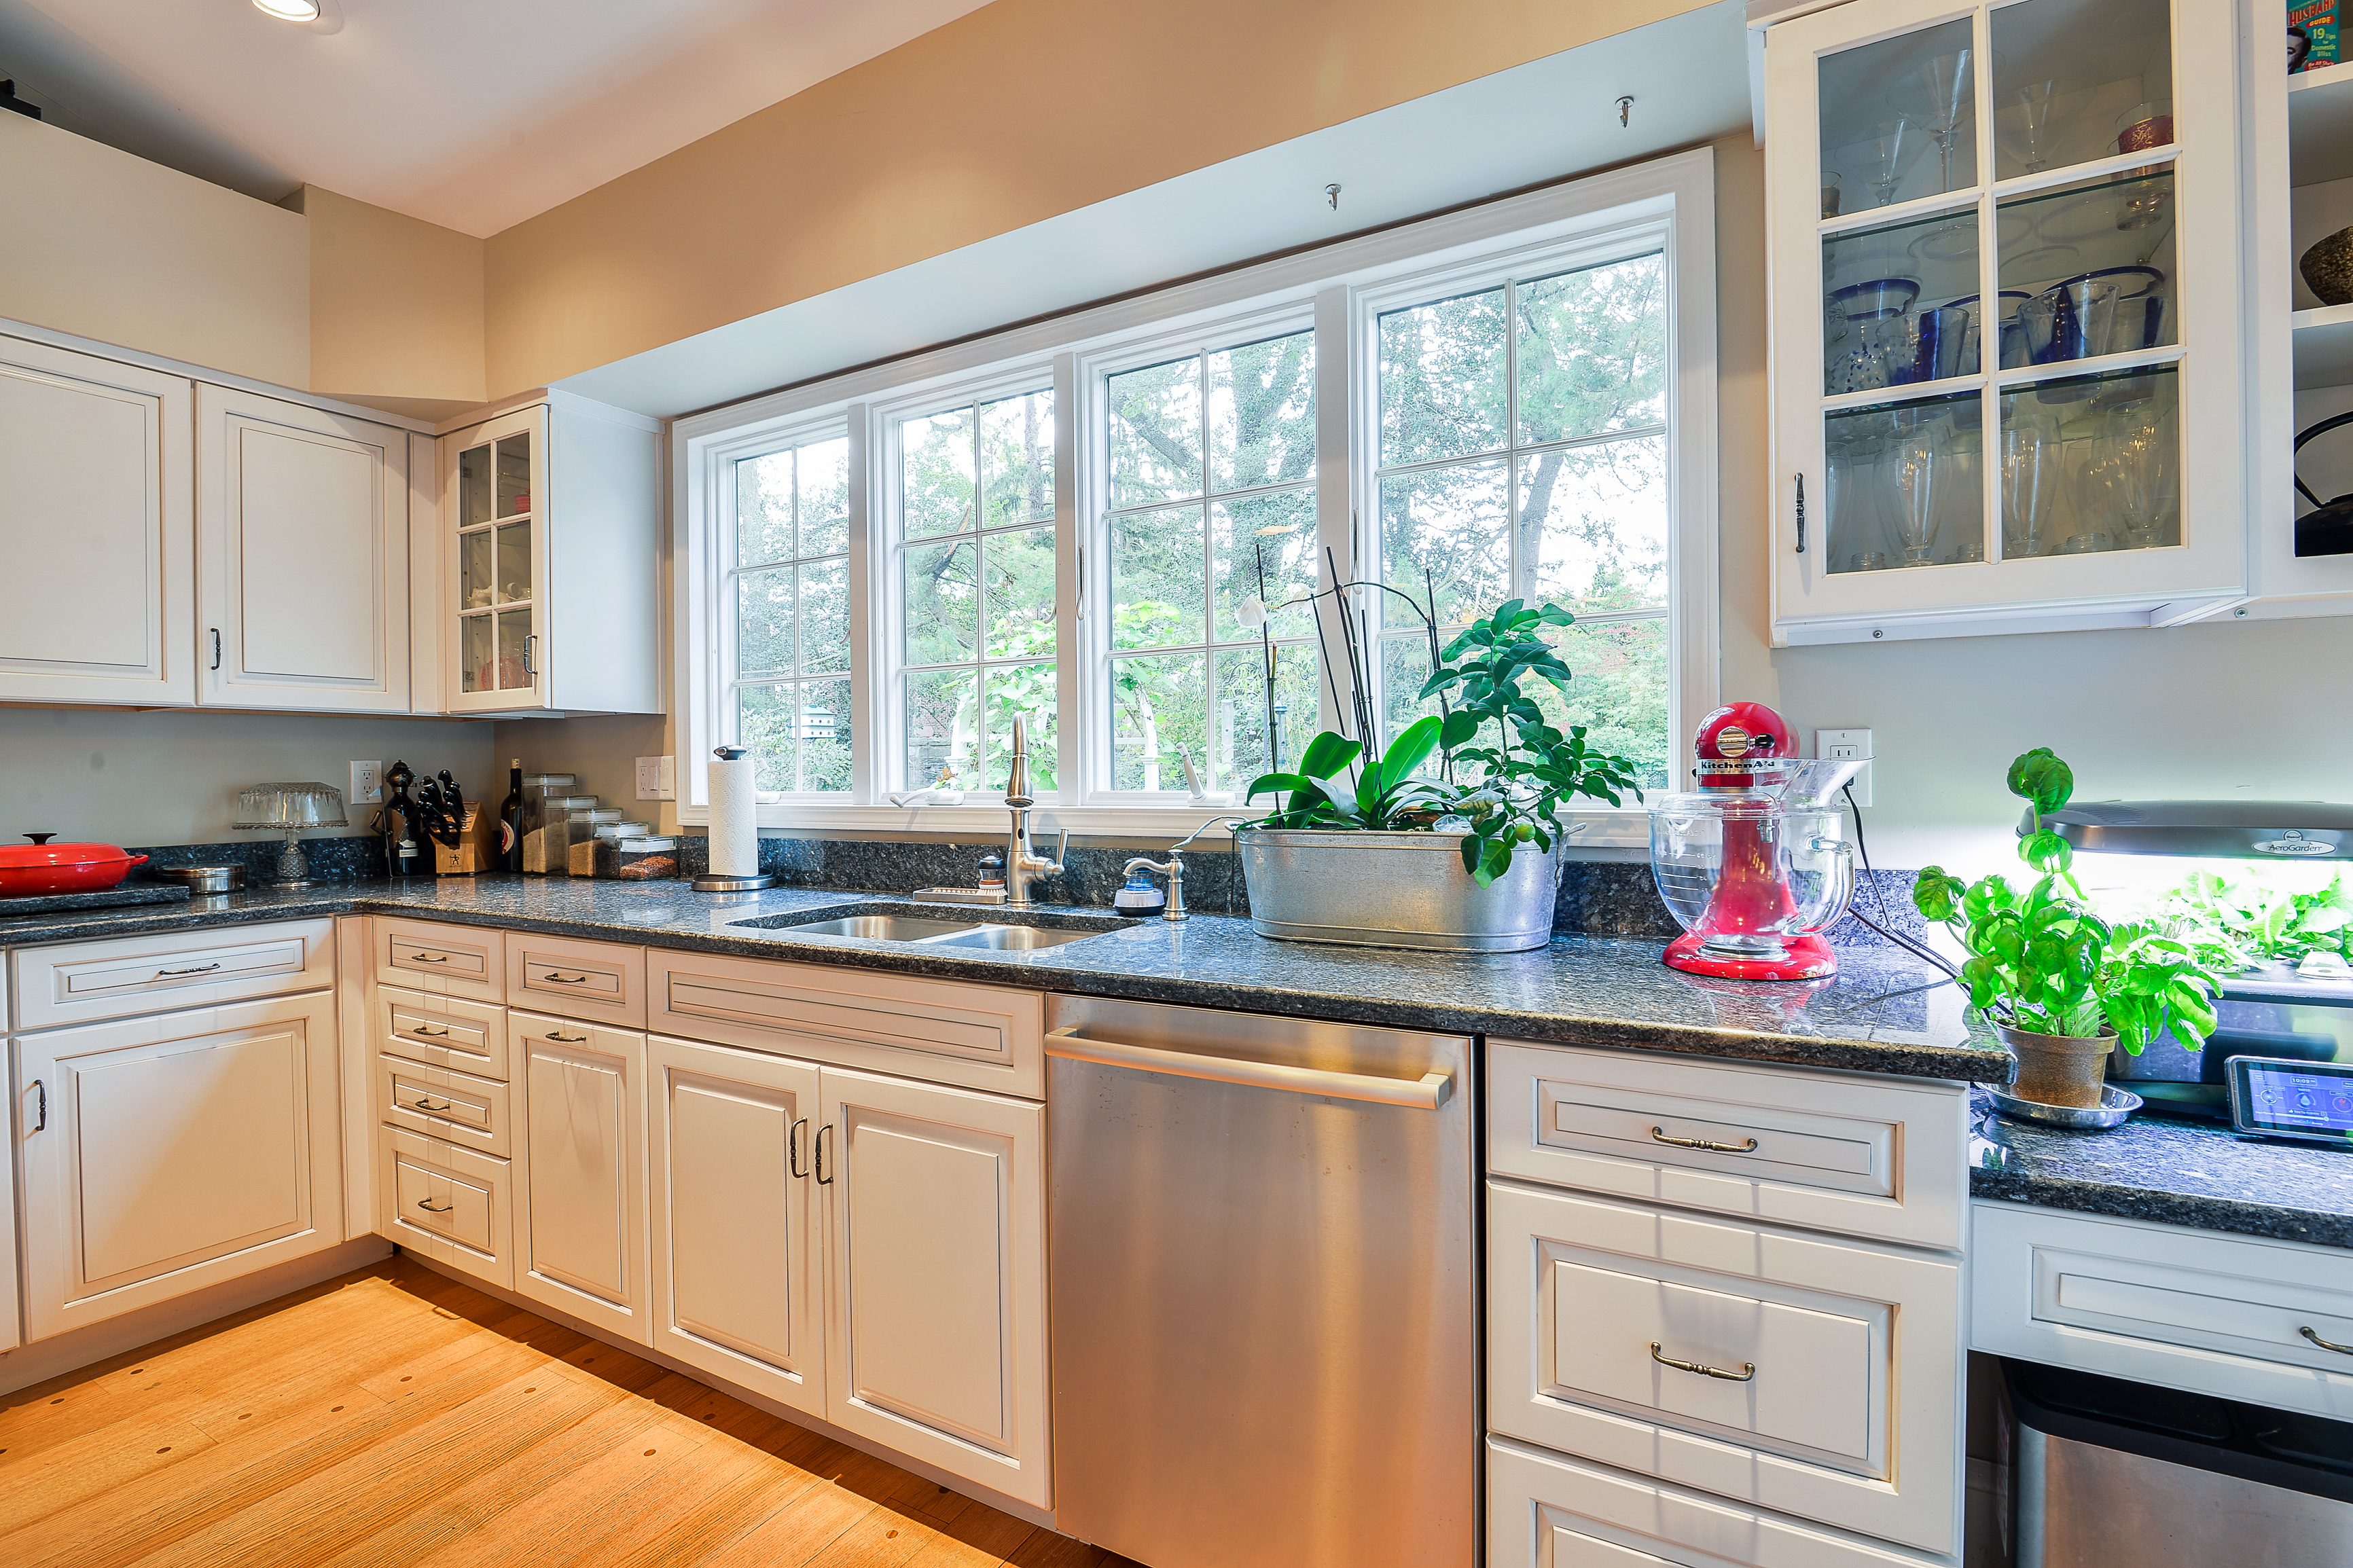 Kitchen Remodel - Nuss Construction Company